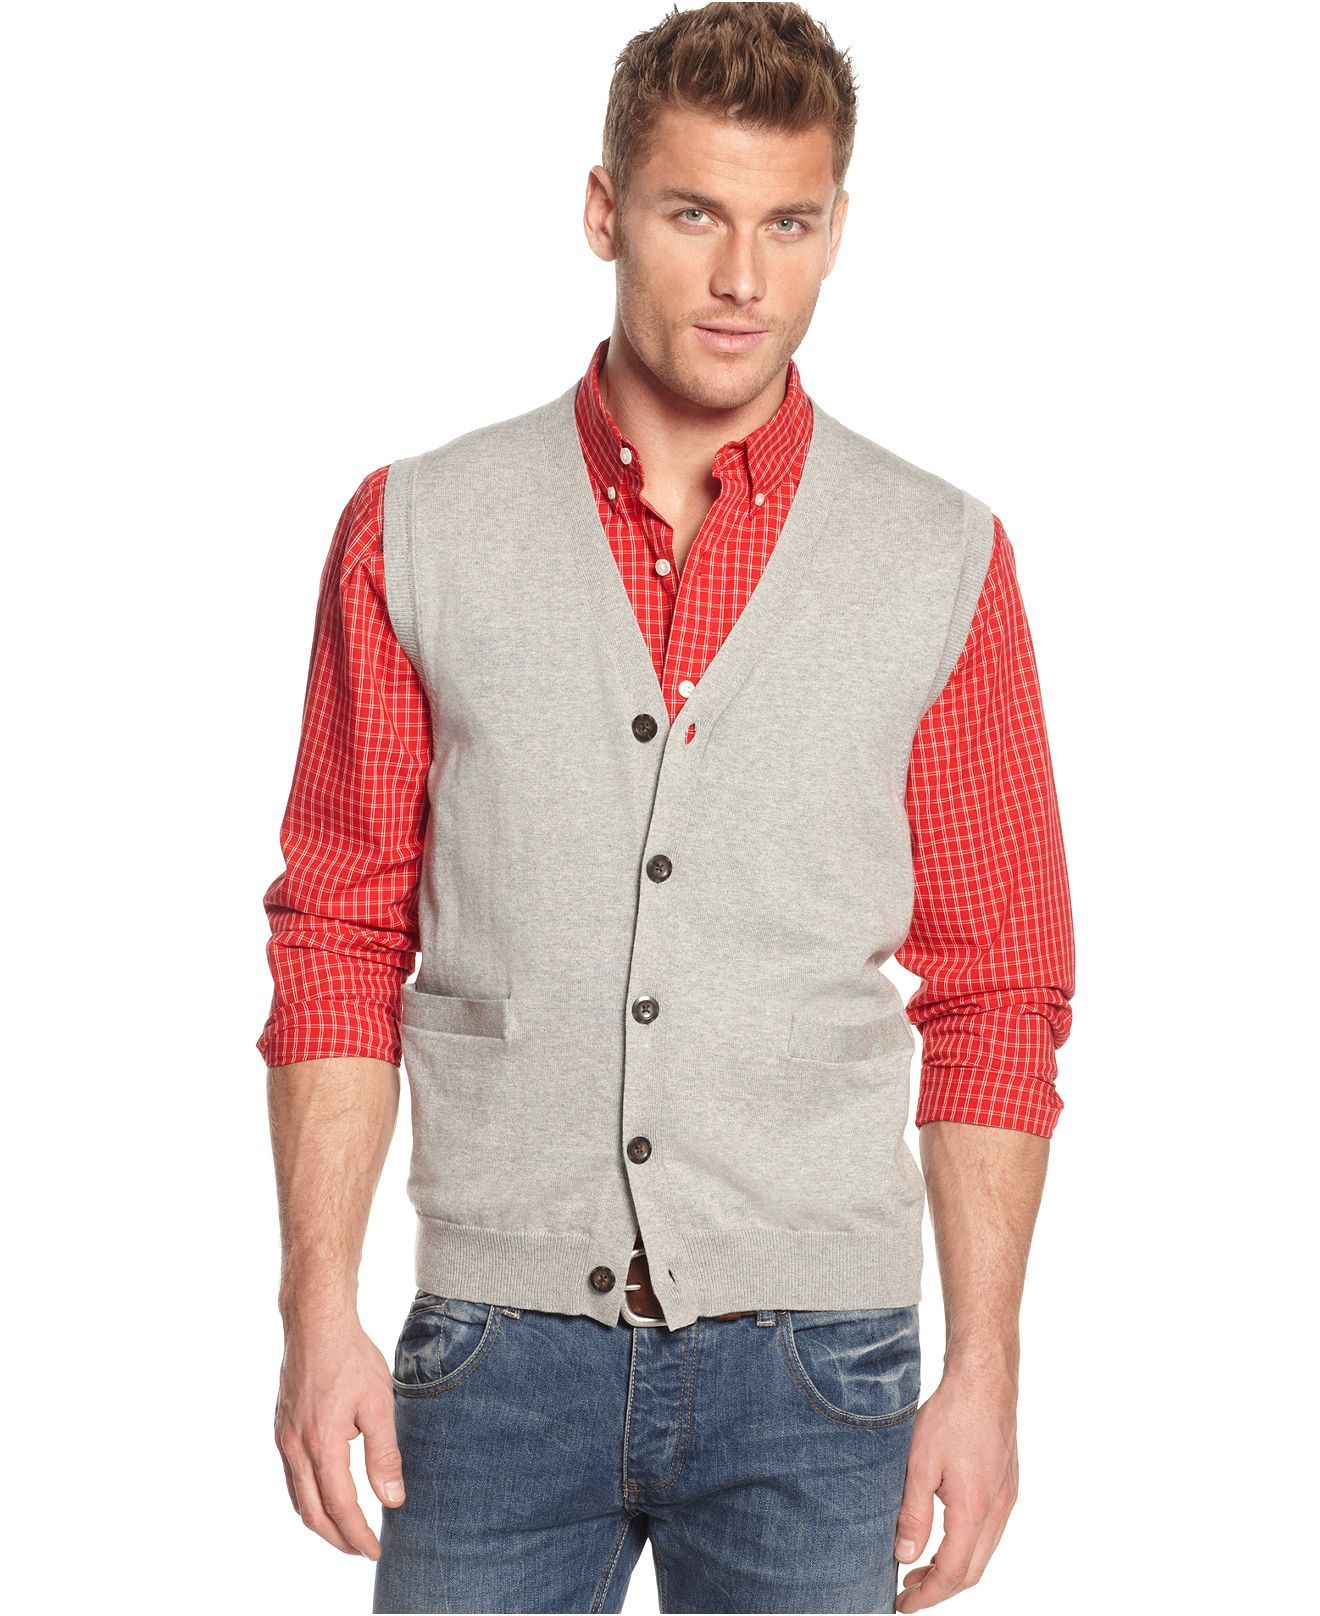 Club Room Vest, Solid Button Front Sweater Vest - Mens Sweaters ...